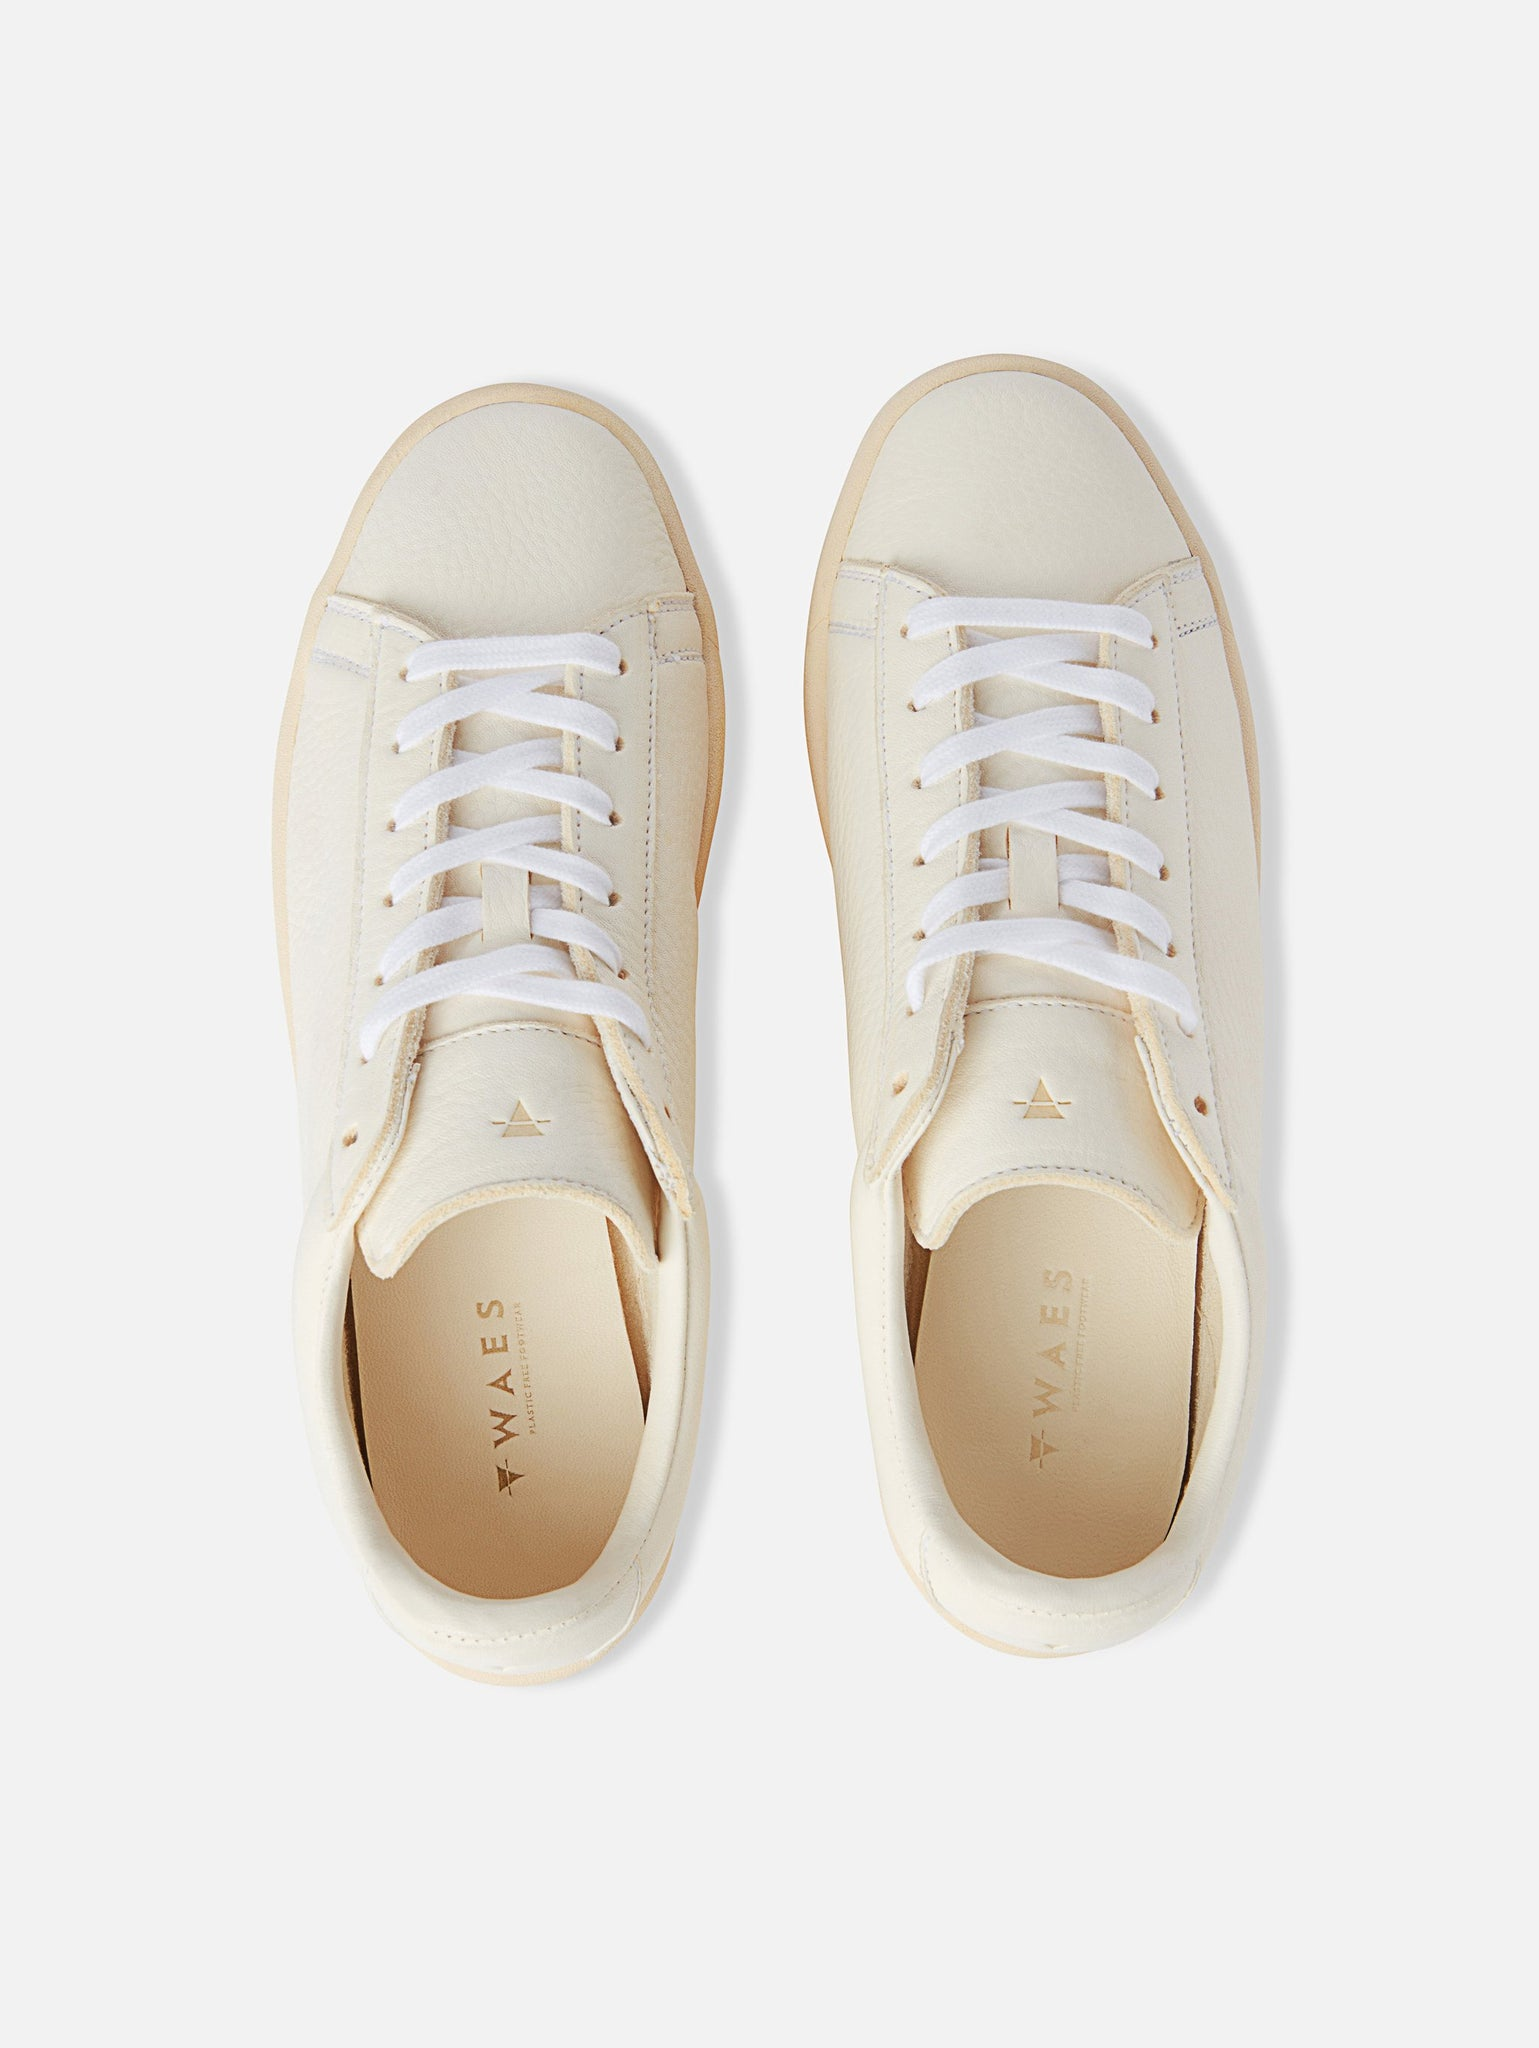 The 1970 - All White Leather Trainer